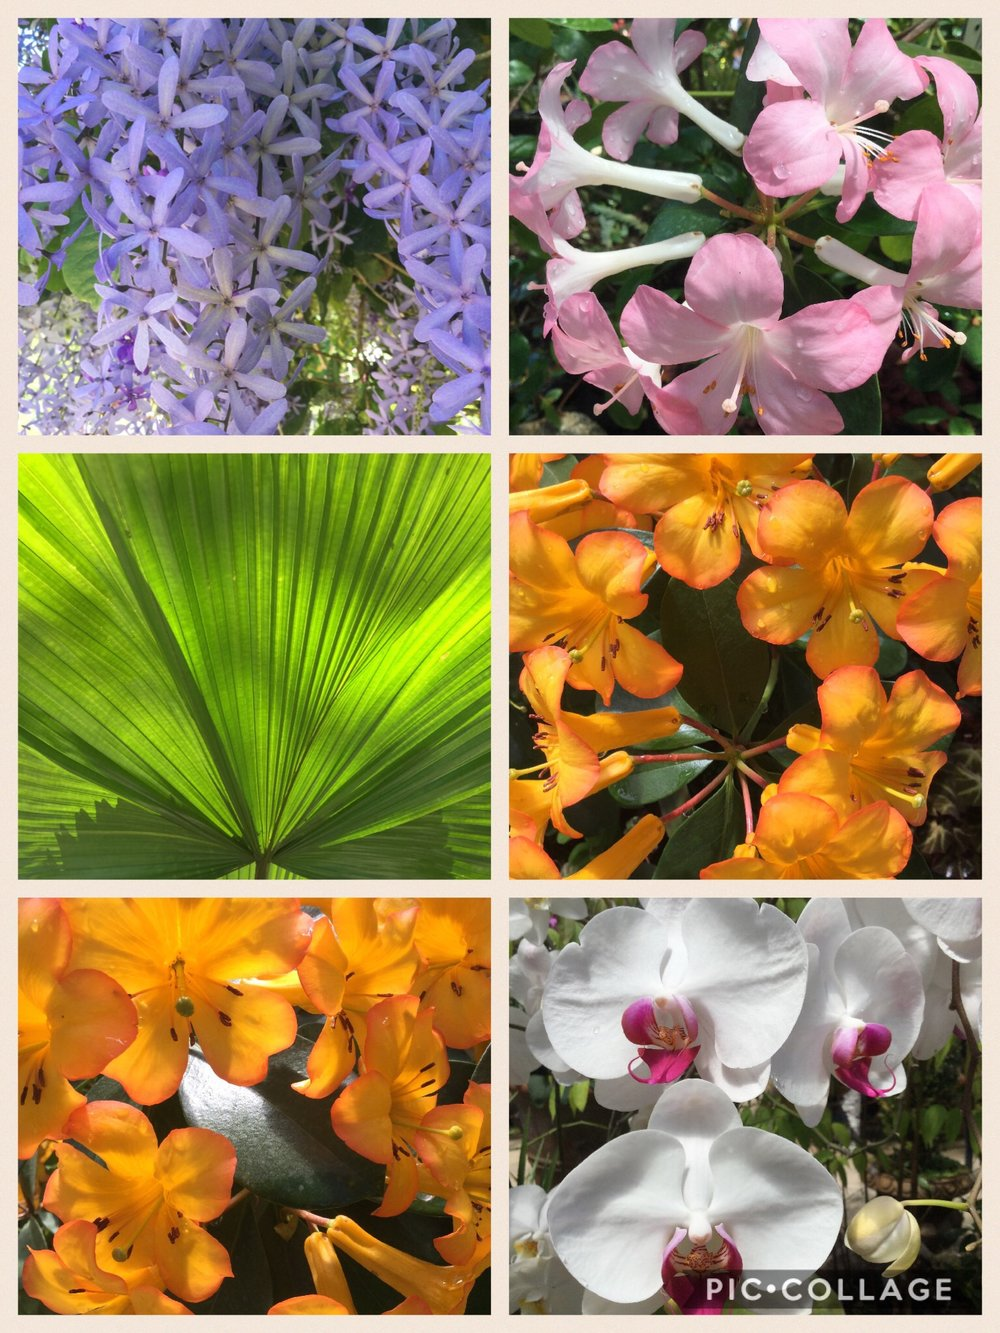 Lili made a collage of some of the plants and flowers we saw. The orchids are amazing here and we also saw vanilla vines - Mexico and Madagascar are the two largest producers on vanilla.